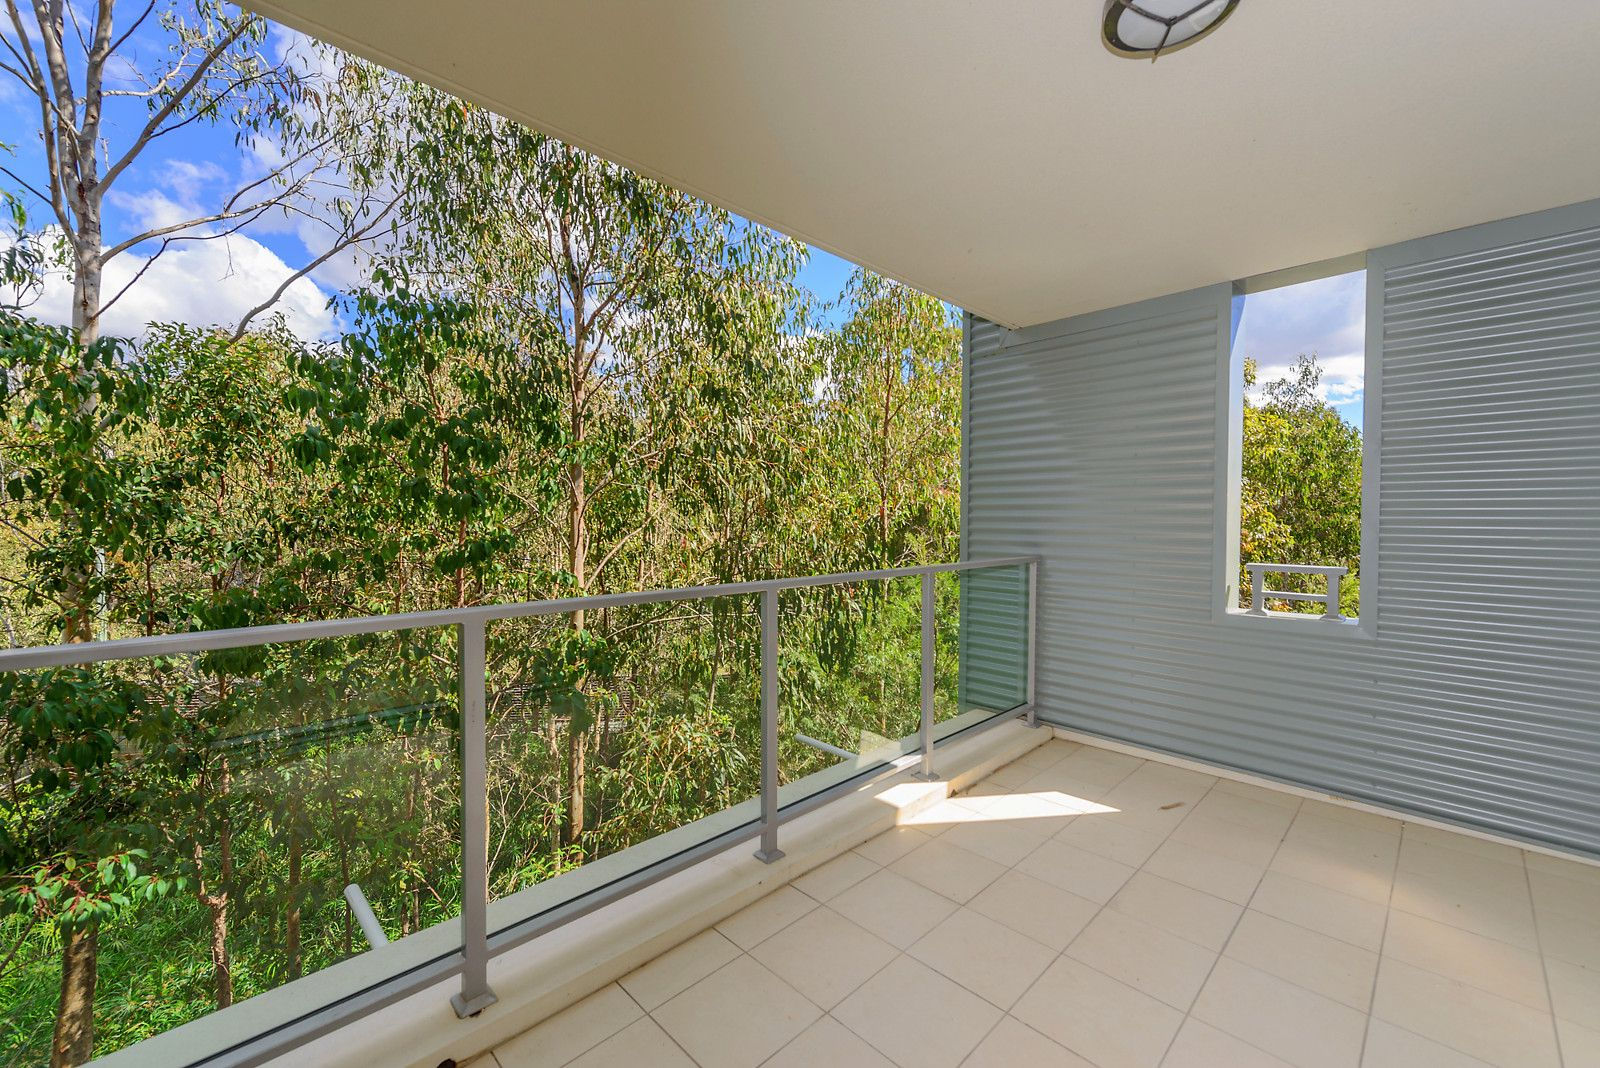 7/Acacia 154 Musgrave Ave, Southport QLD 4215, Image 1